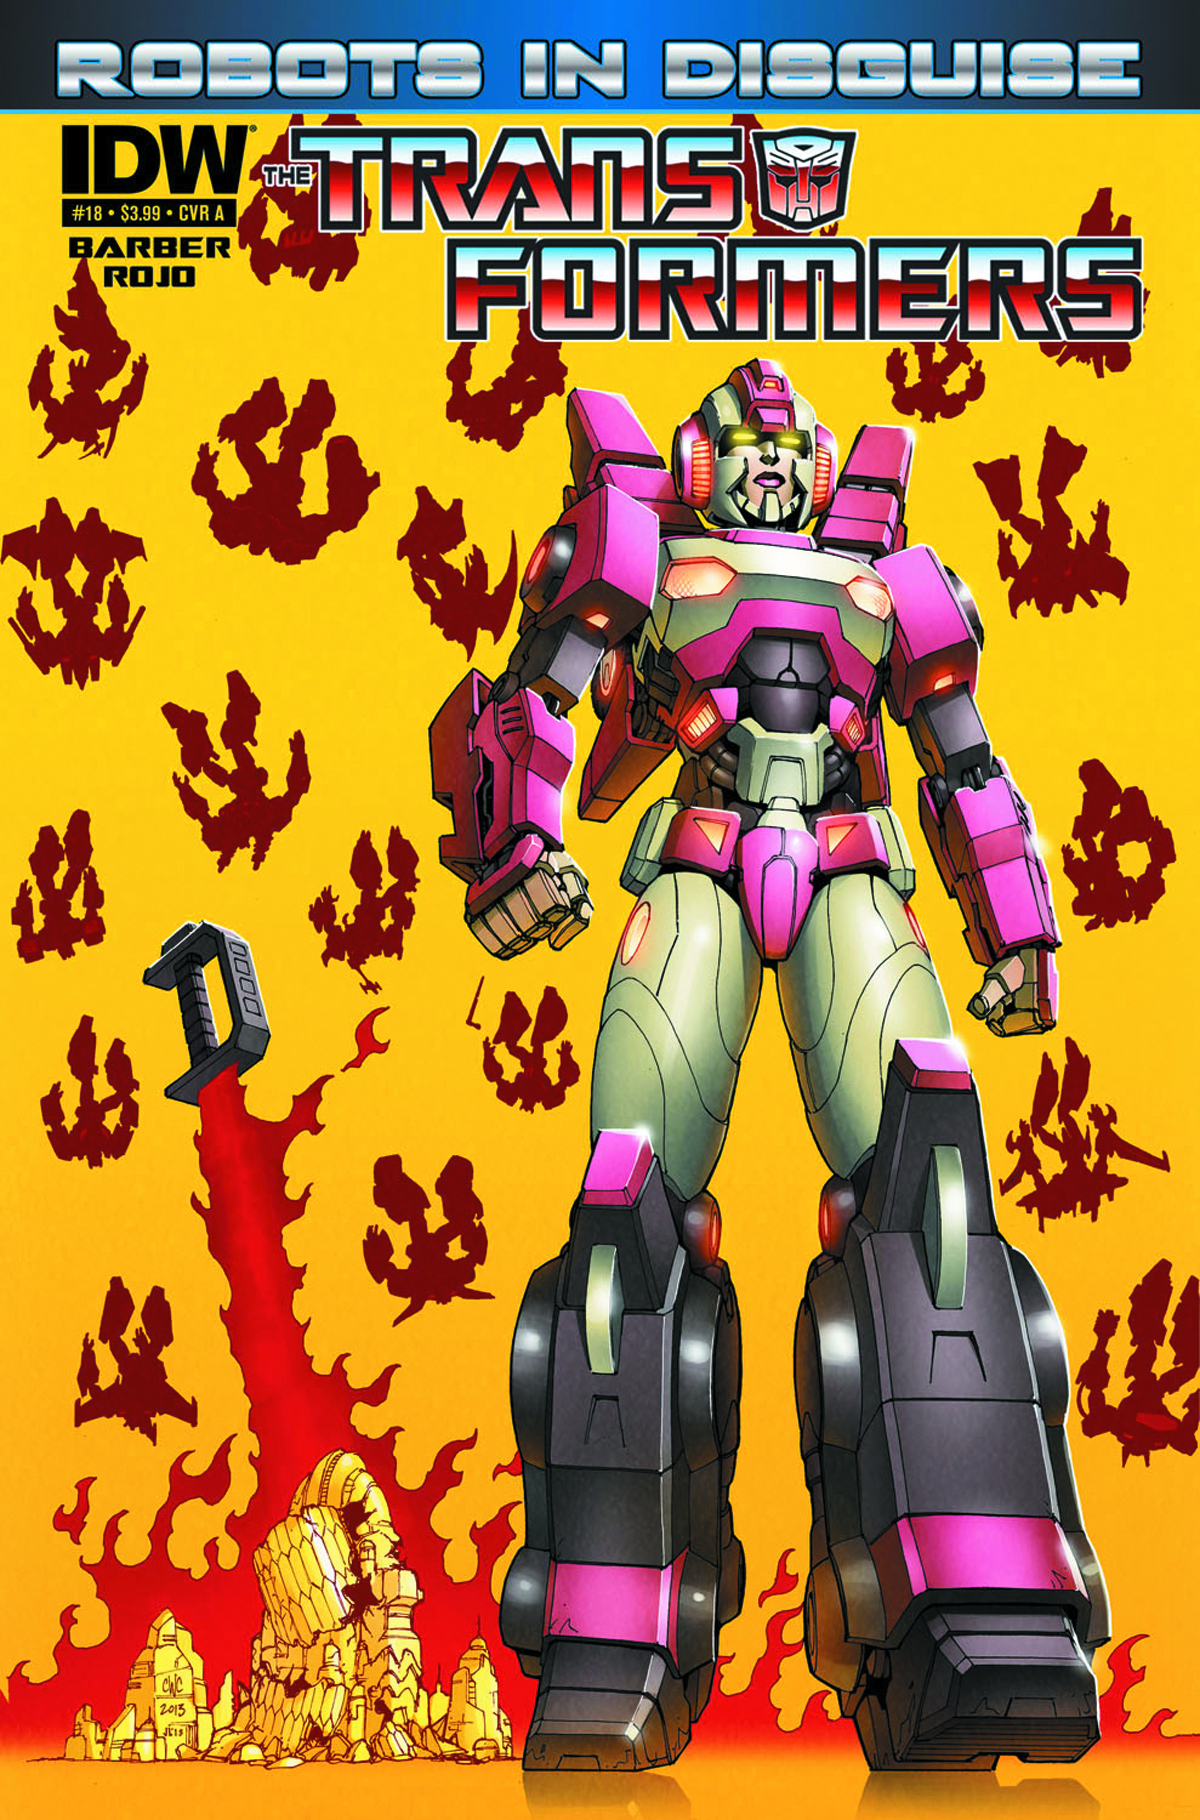 TRANSFORMERS ROBOTS IN DISGUISE #18